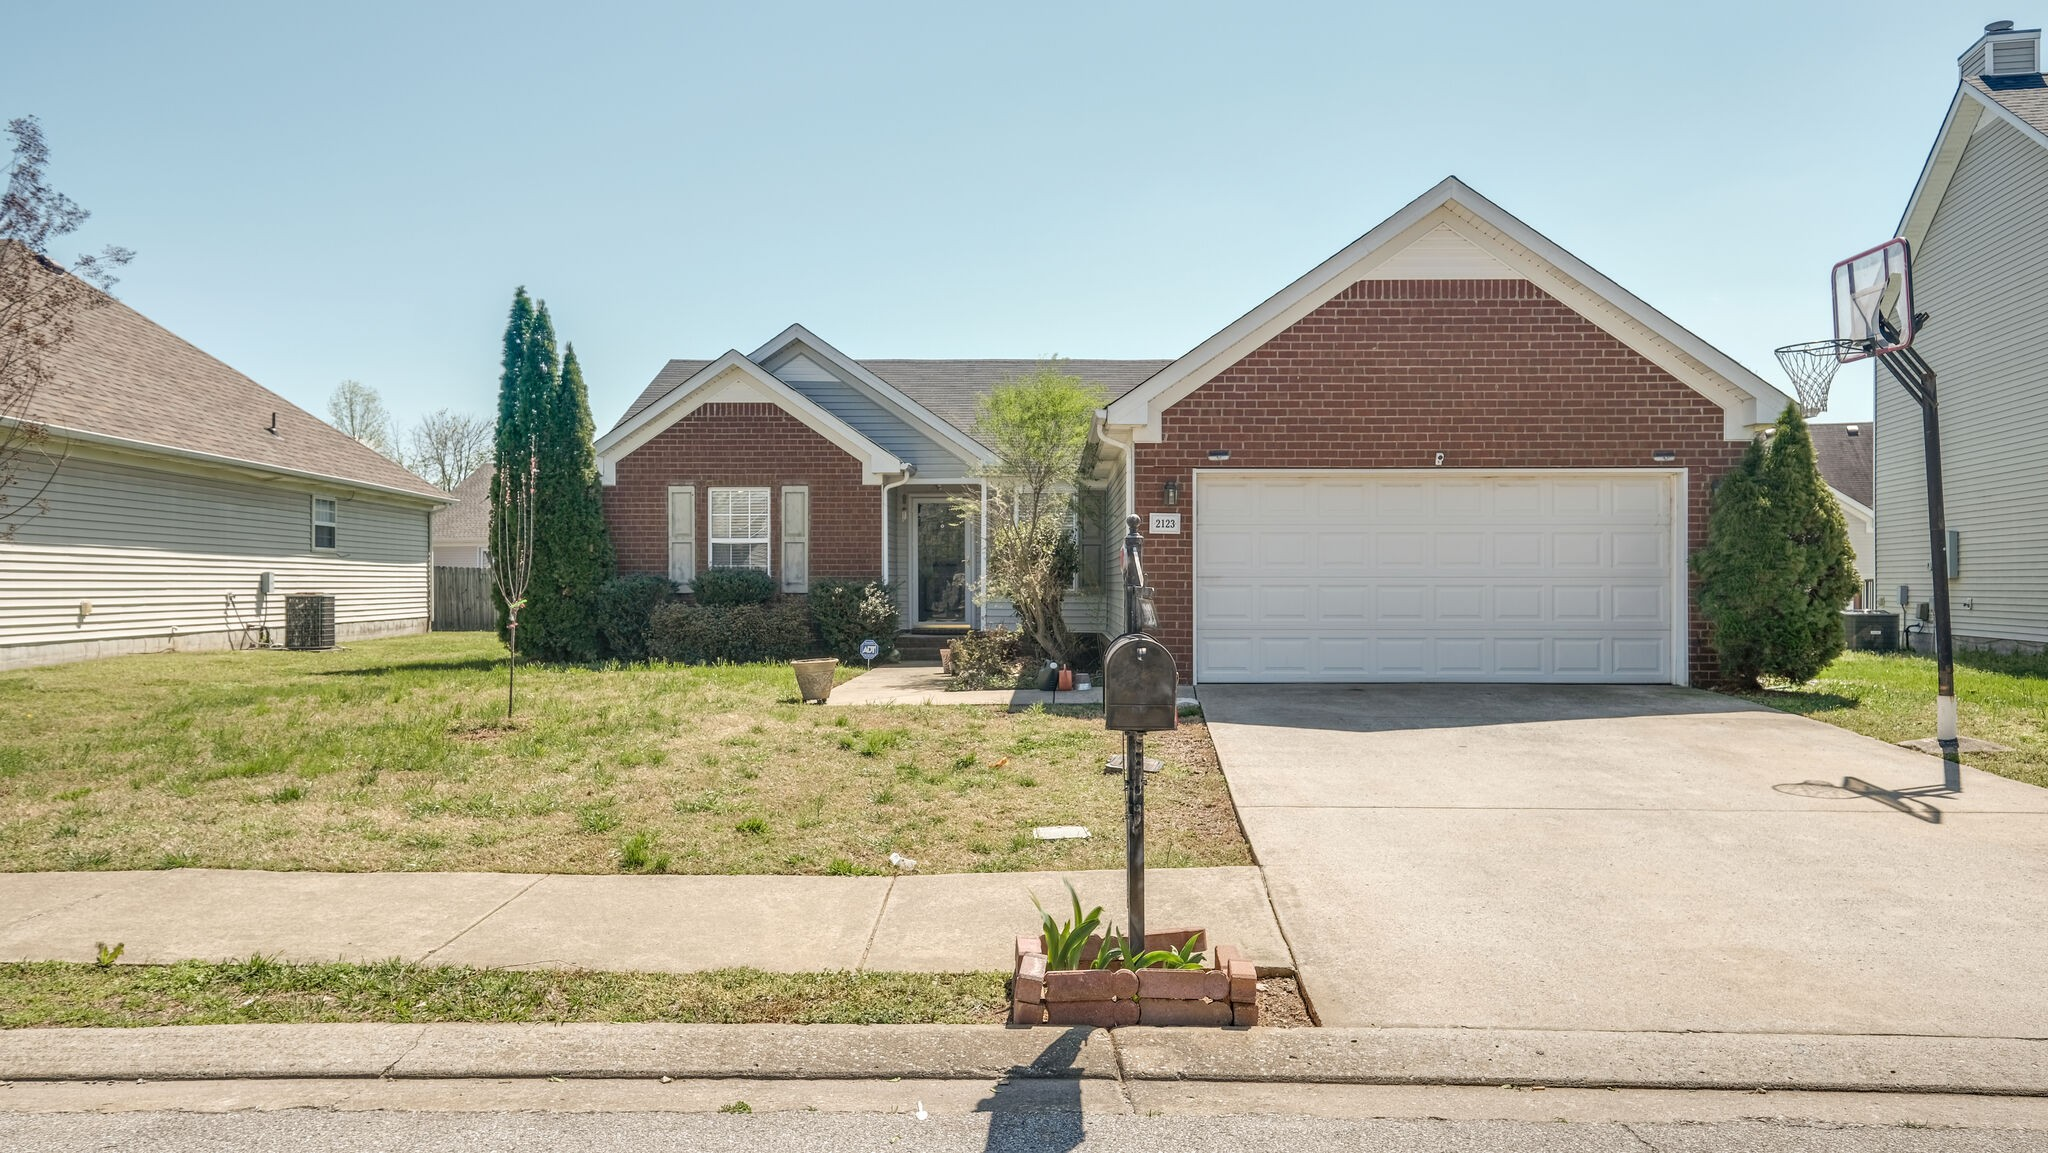 Beautiful open floor plan with kitchen and great room with vaulted ceiling. Zoned bedrooms with sperate utility room. Maple cabinets with bar/top. Master bath has large walk-in closet. 2 Car garage! Don't miss out on this beautiful home! Appliances & Water Heater less than 1 year